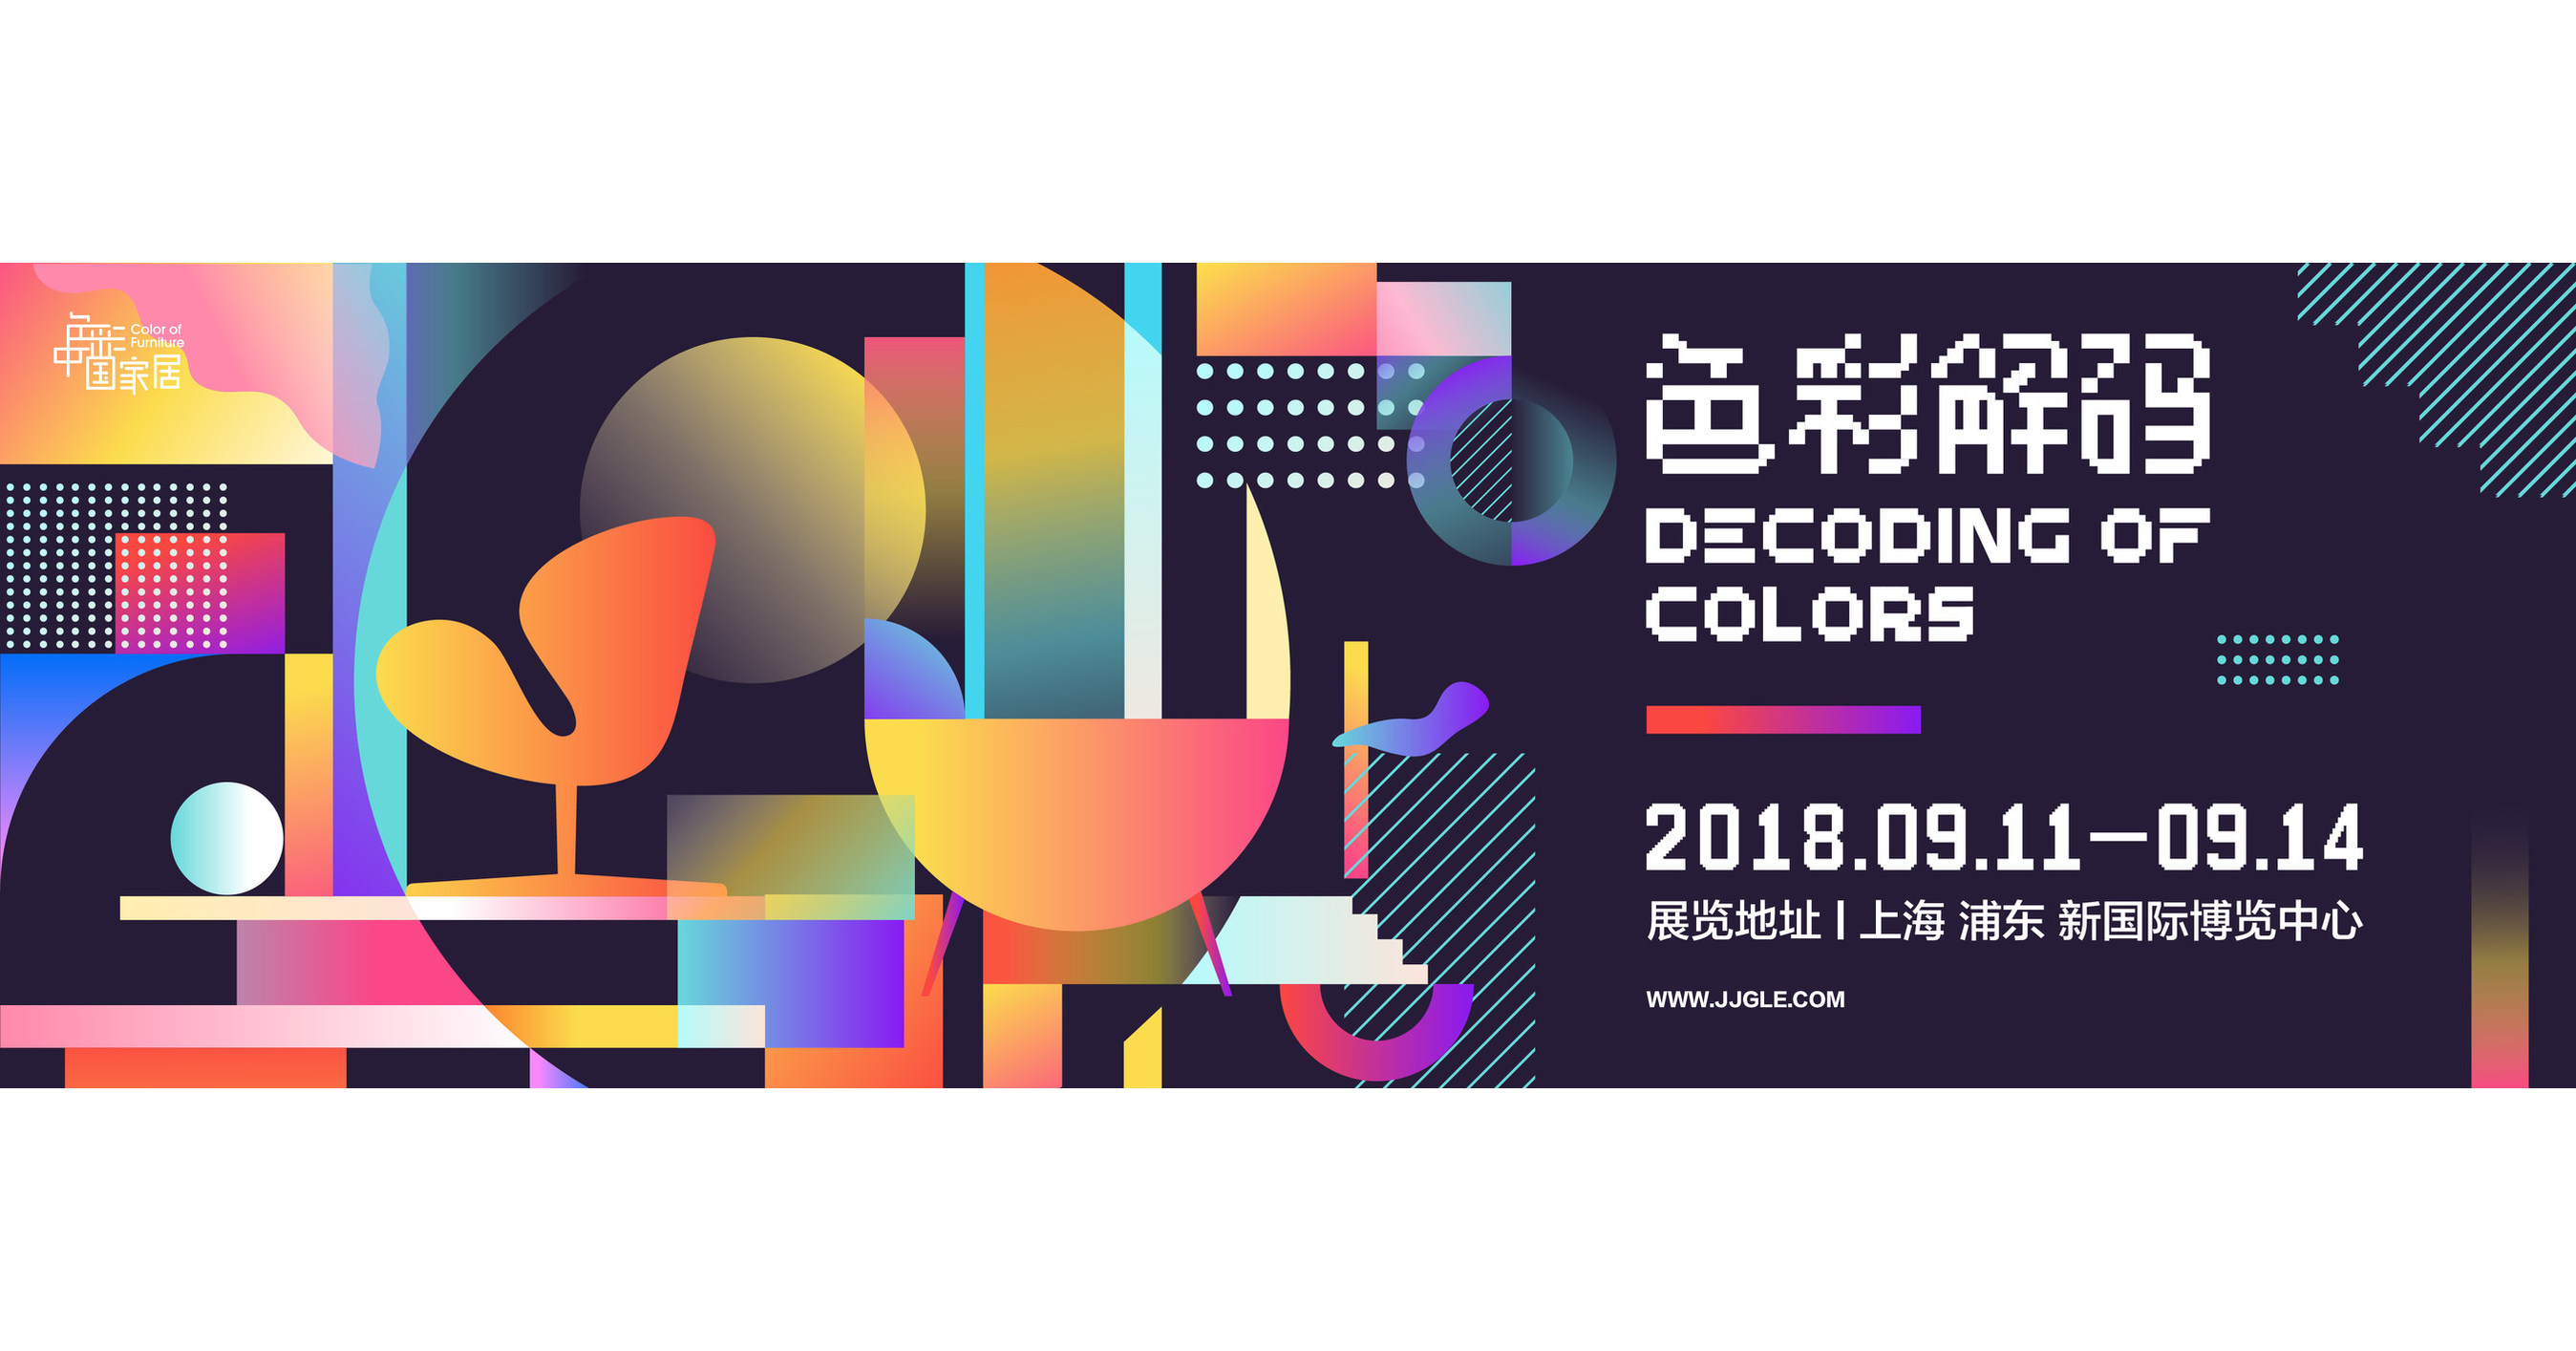 COLOR OF FURNITURE, a Multi-dimensional Decoding of Colors